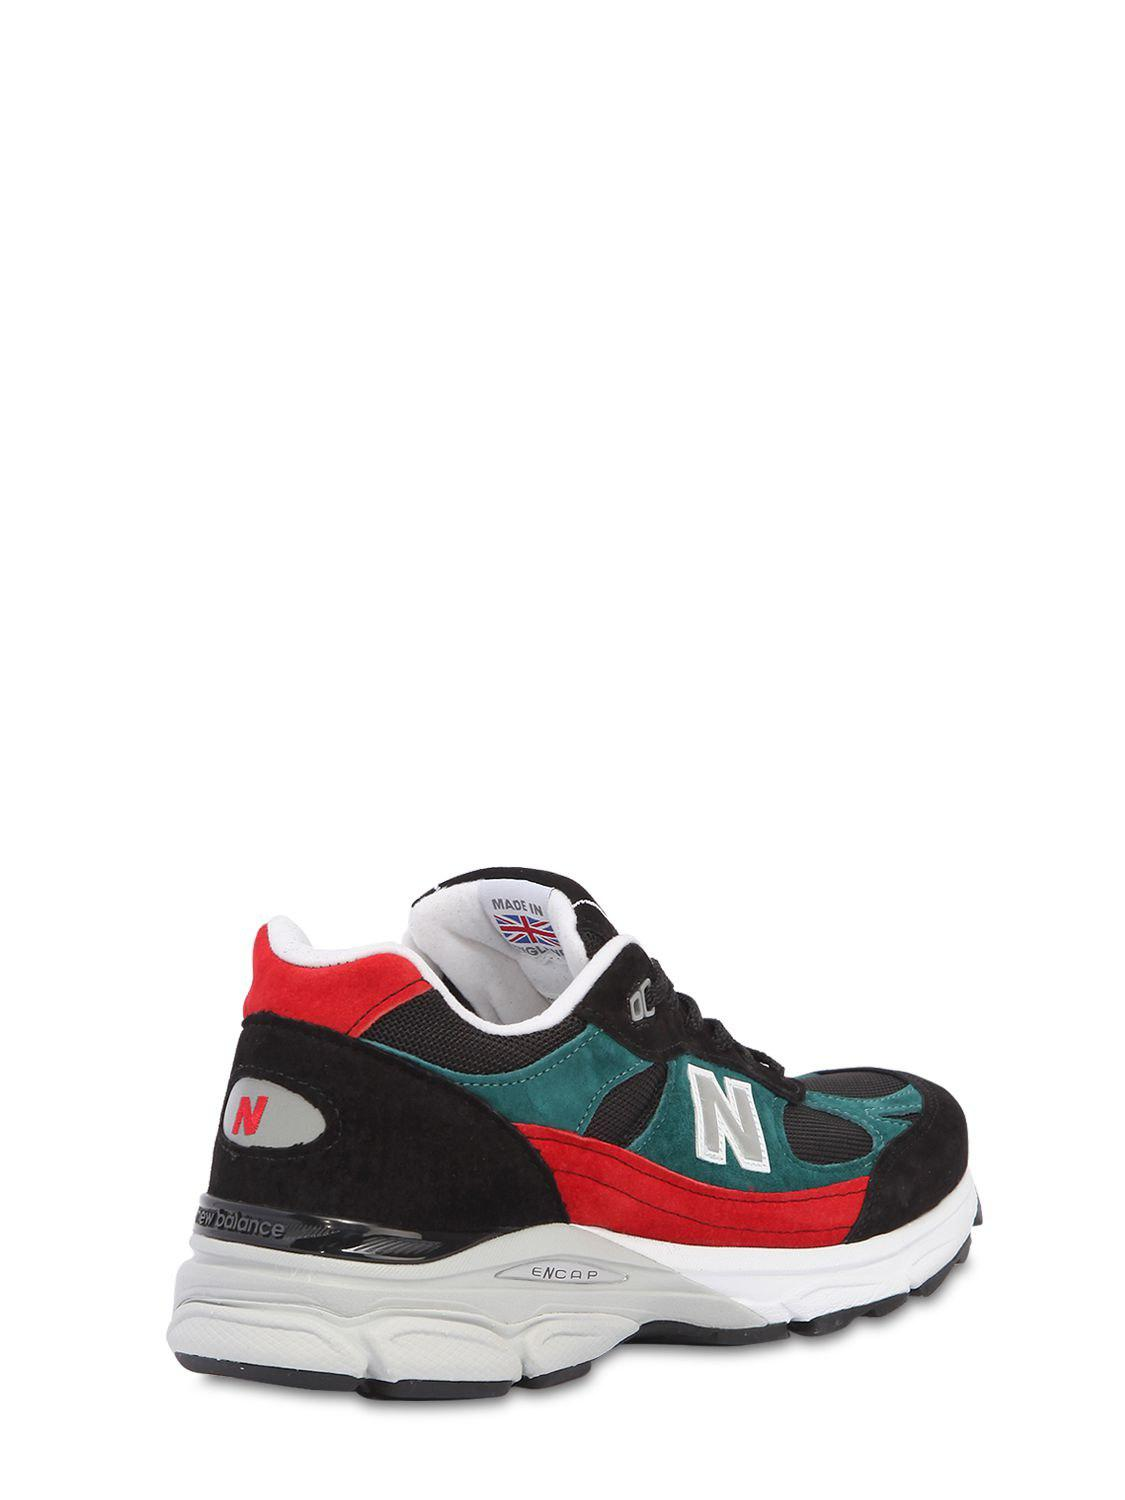 SNEAKERS 991.9 MADE IN ENGLAND IN PELLE New Balance acrS7tq